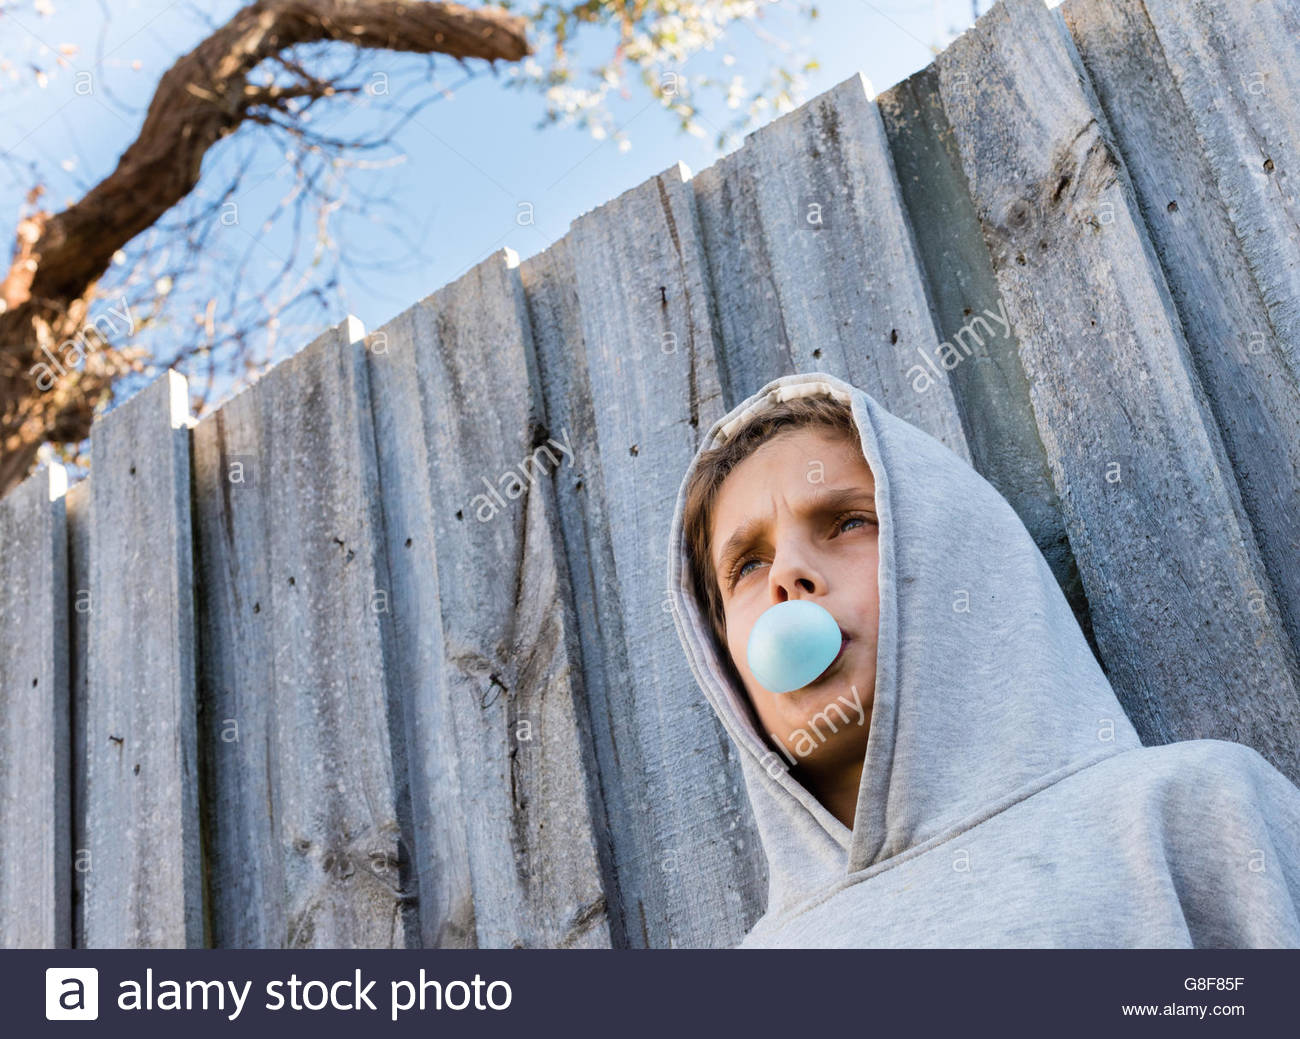 Below angled view of teenage boy in grey hoodie blowing blue bubble gum against grey wooden fence - Stock Image